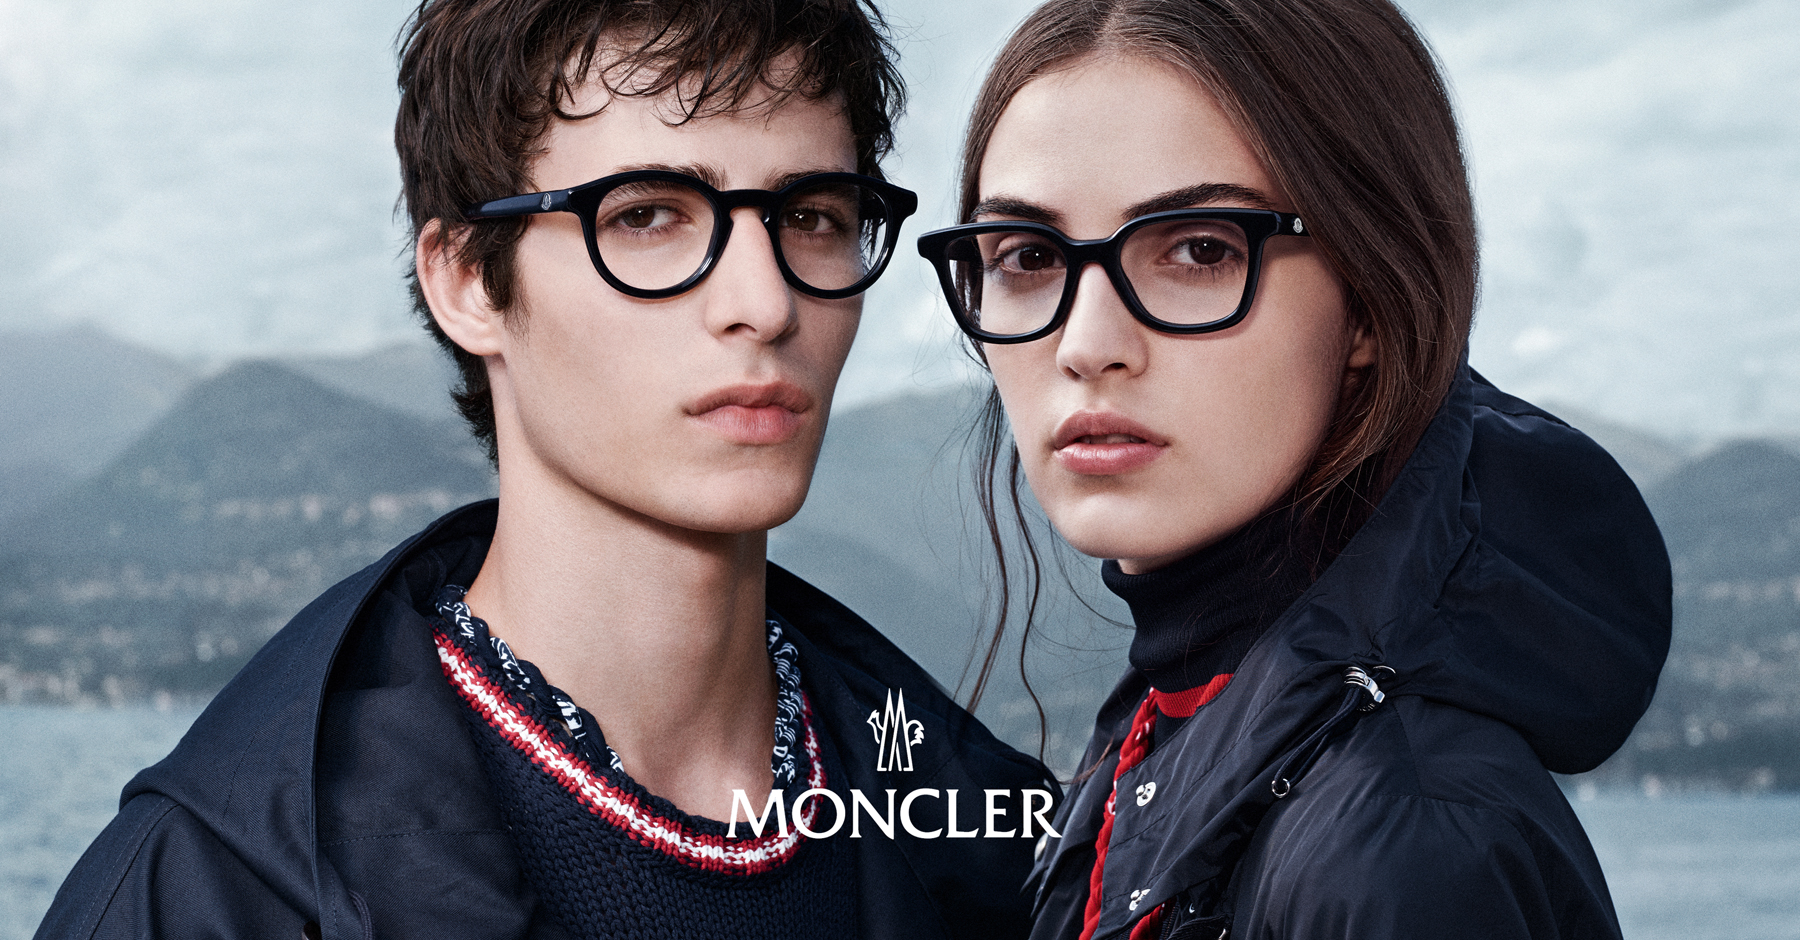 EXT_MONCLER LUNETTES_FW16_SUNGLASSES_COMBINED_NEW OCCHIALE_V3.jpg